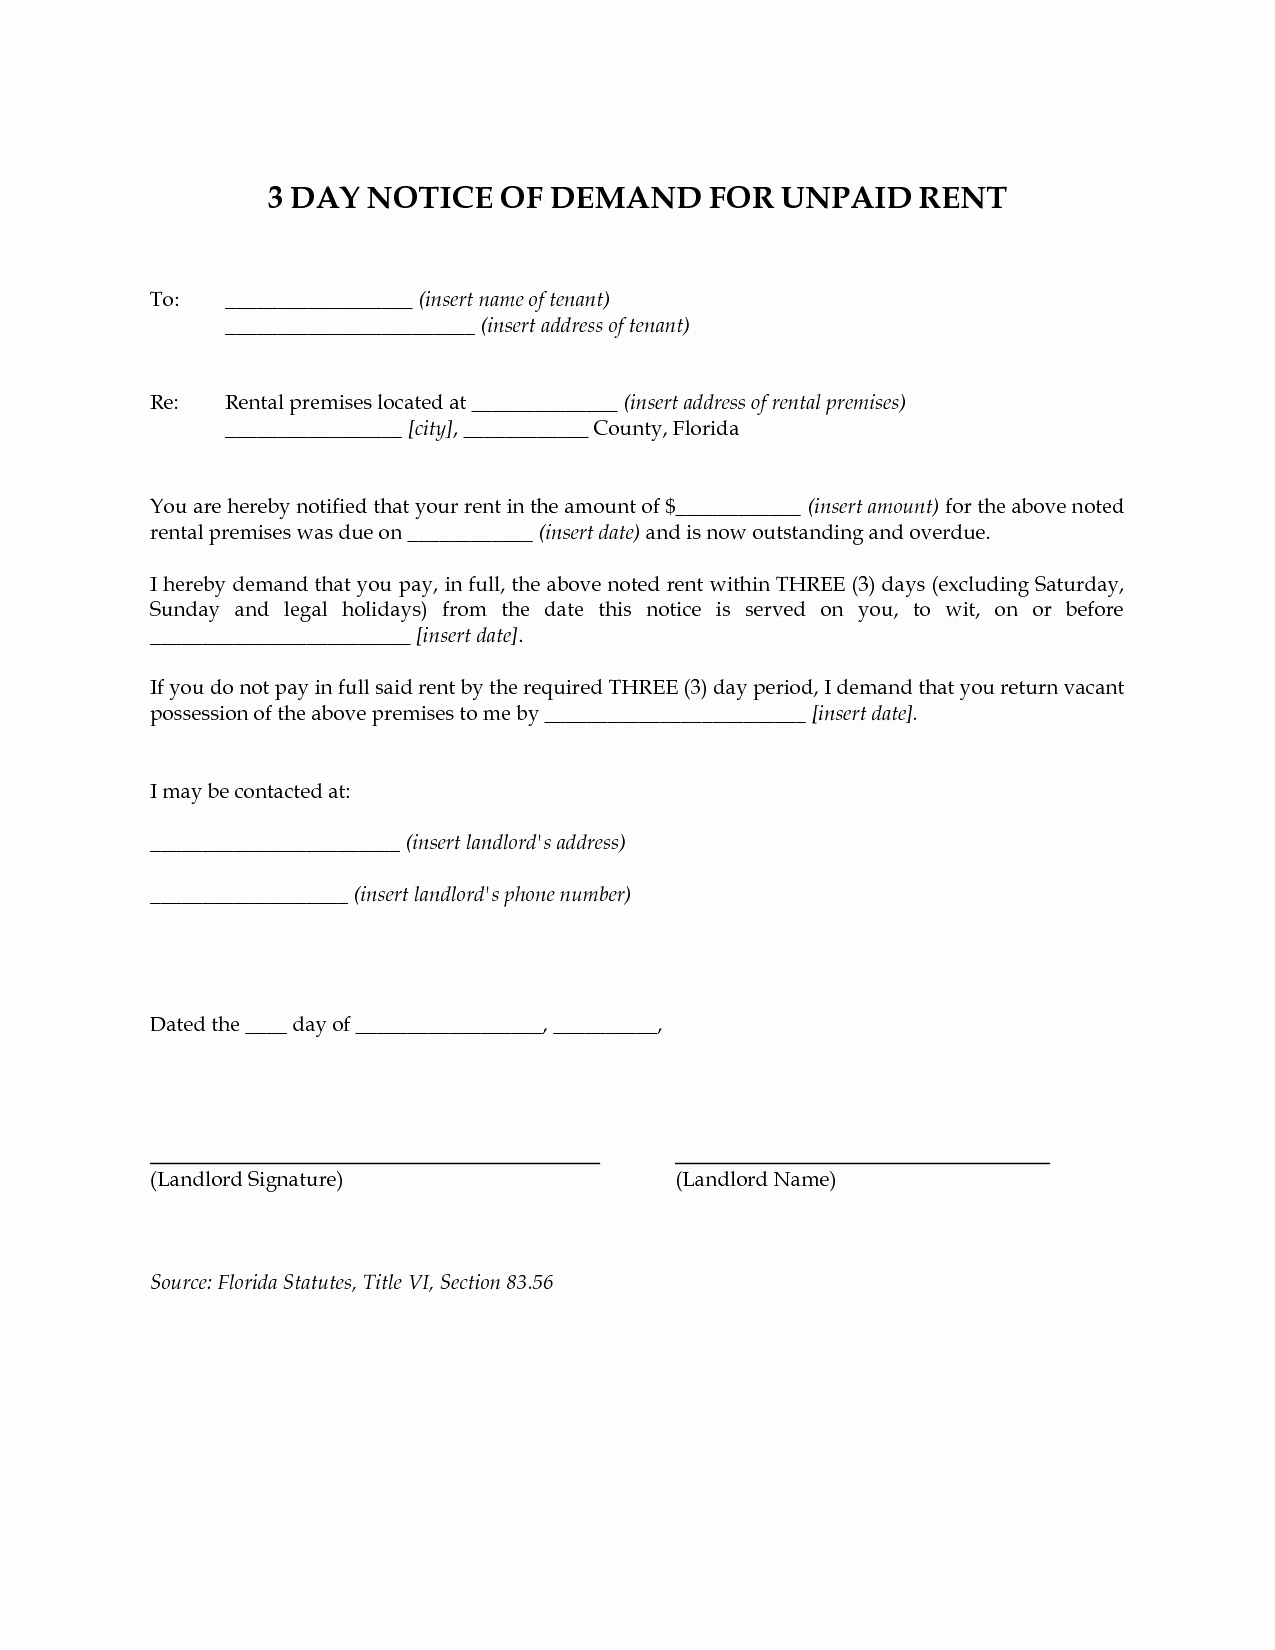 Demand Letter Template Breach Of Contract - Sample Demand Letter for Unpaid Rent Beautiful Letter Od Demand